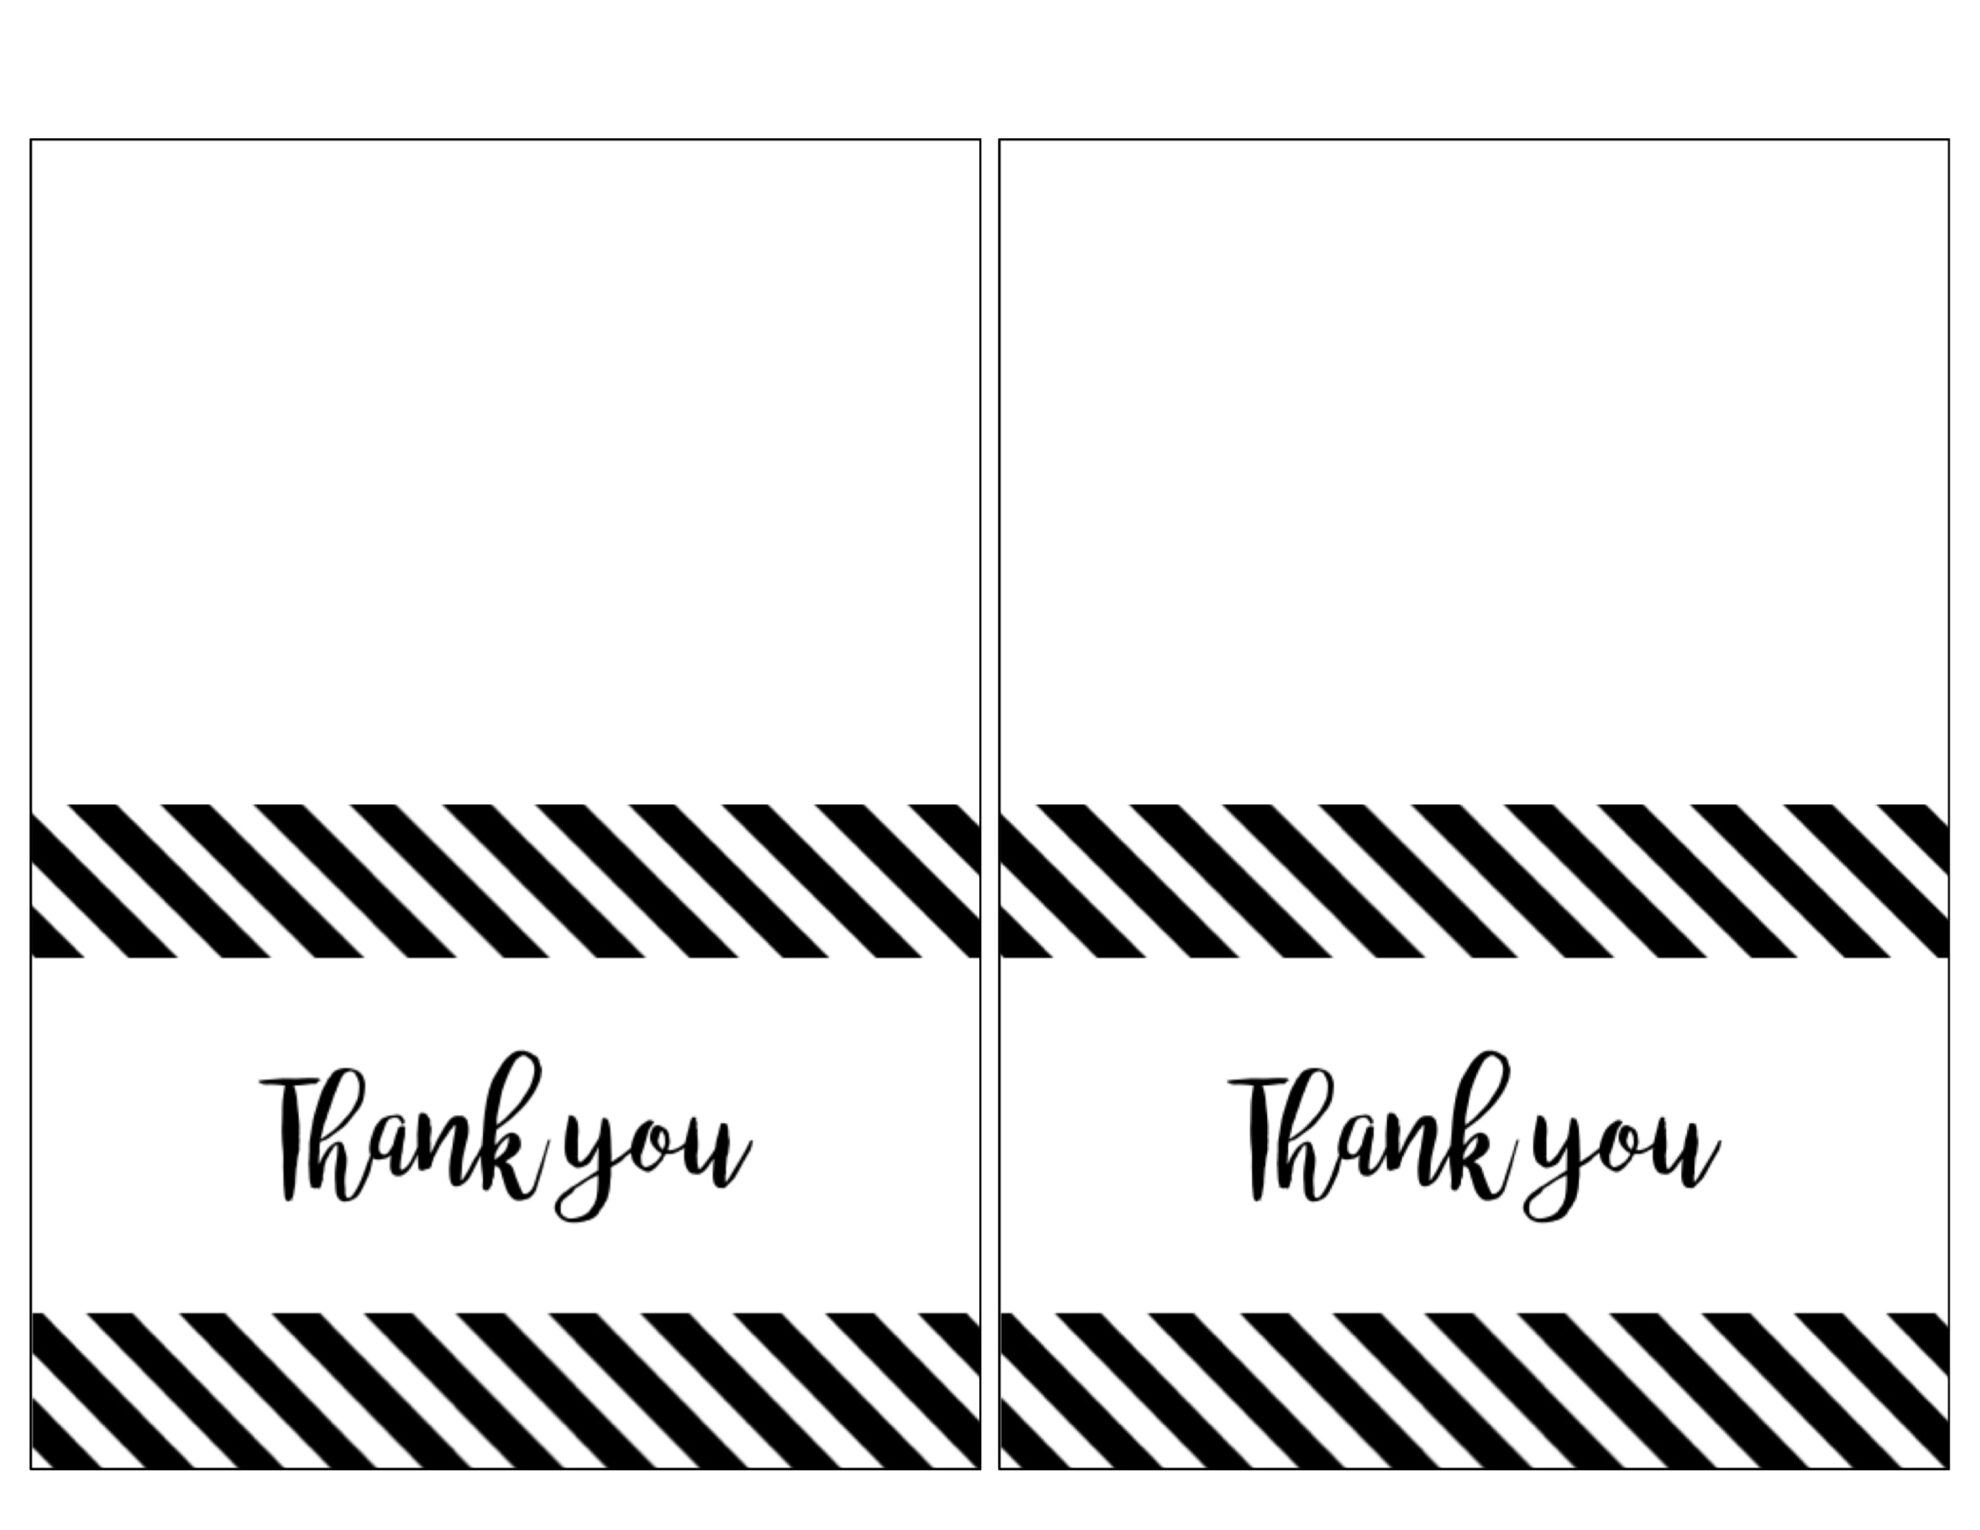 click the following links to print the free thank you cards print